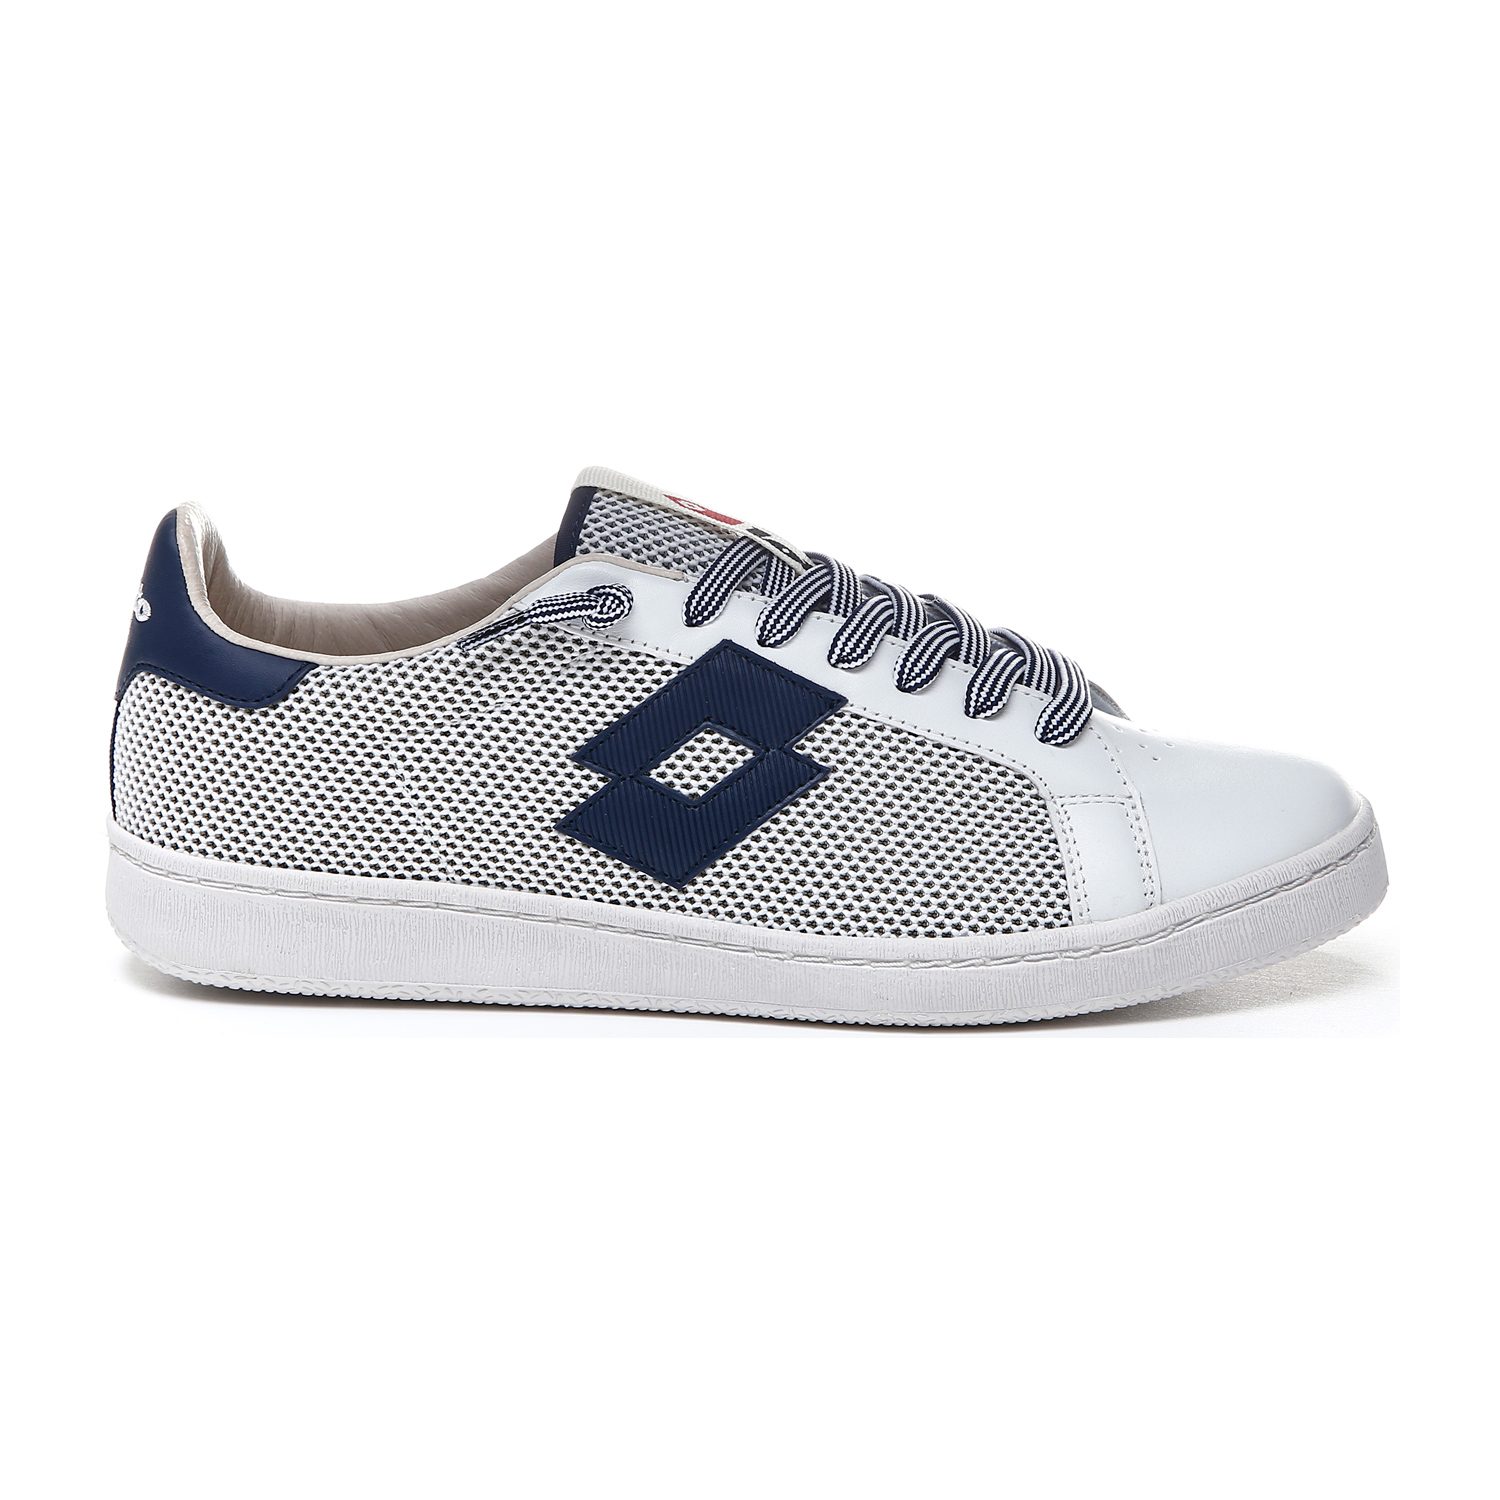 fa269be2 Lotto Sport Italia - Footwear, clothing and accessories for sport ...